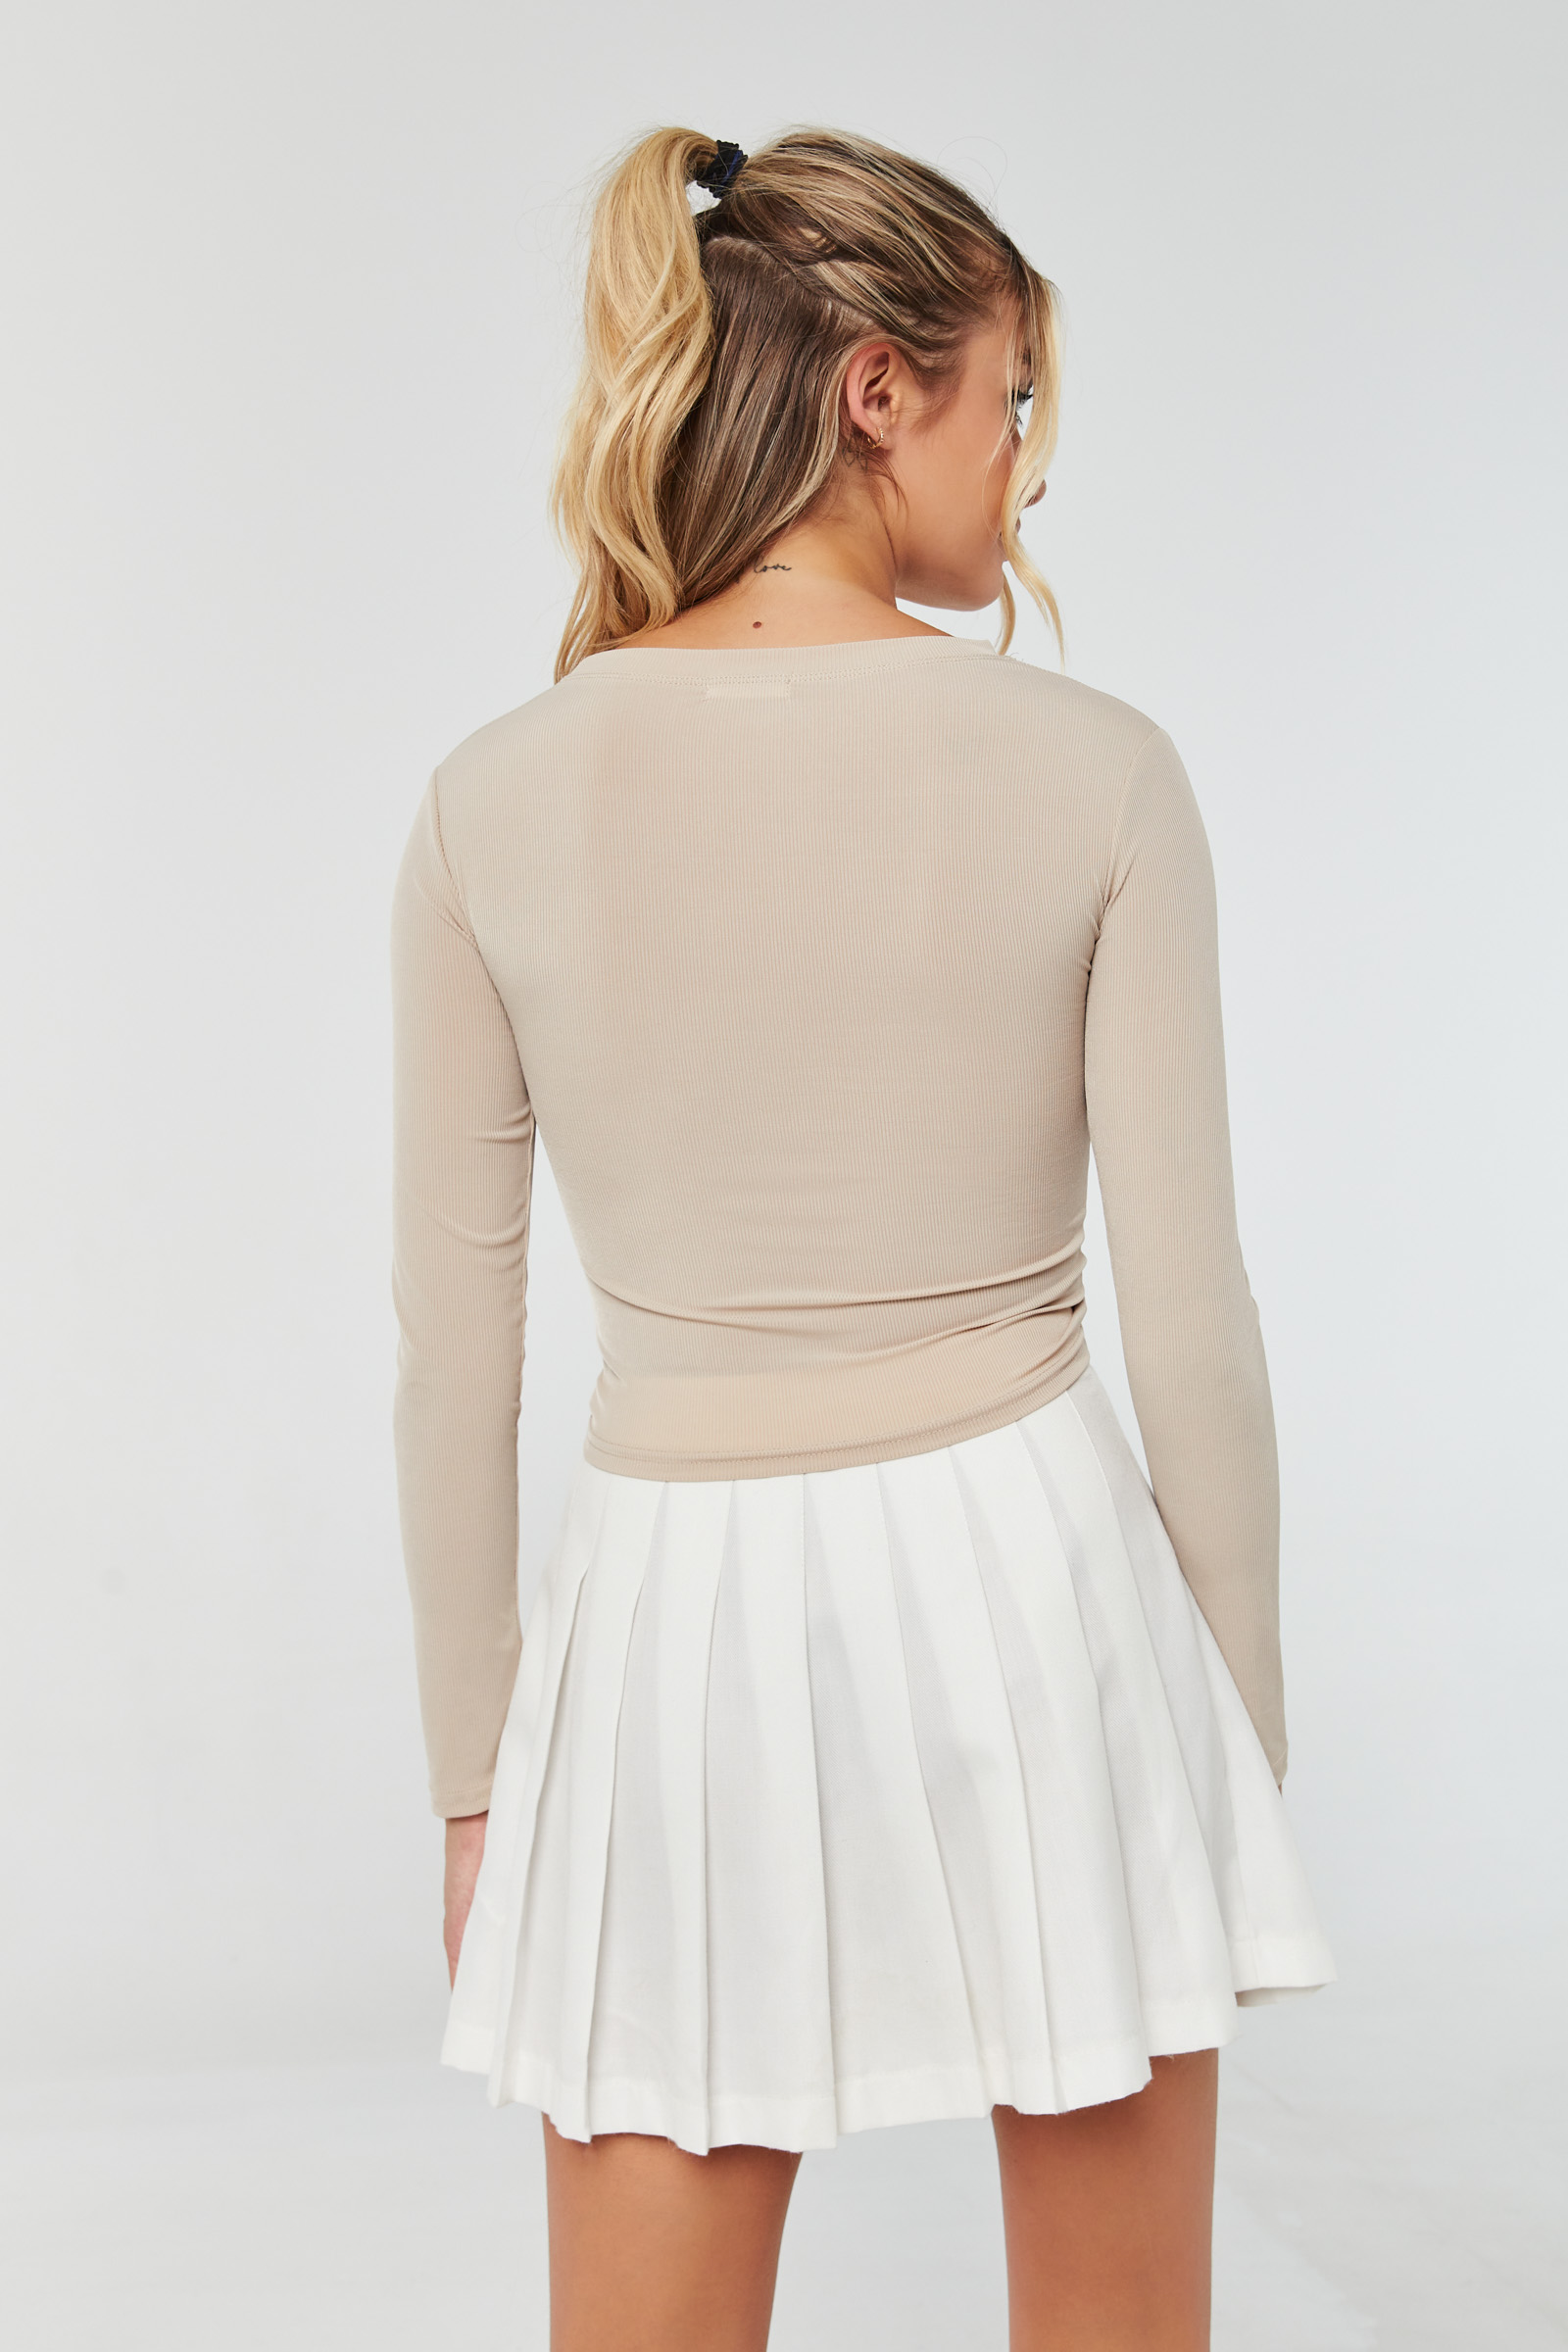 Ribbed Tee with Side Ruching